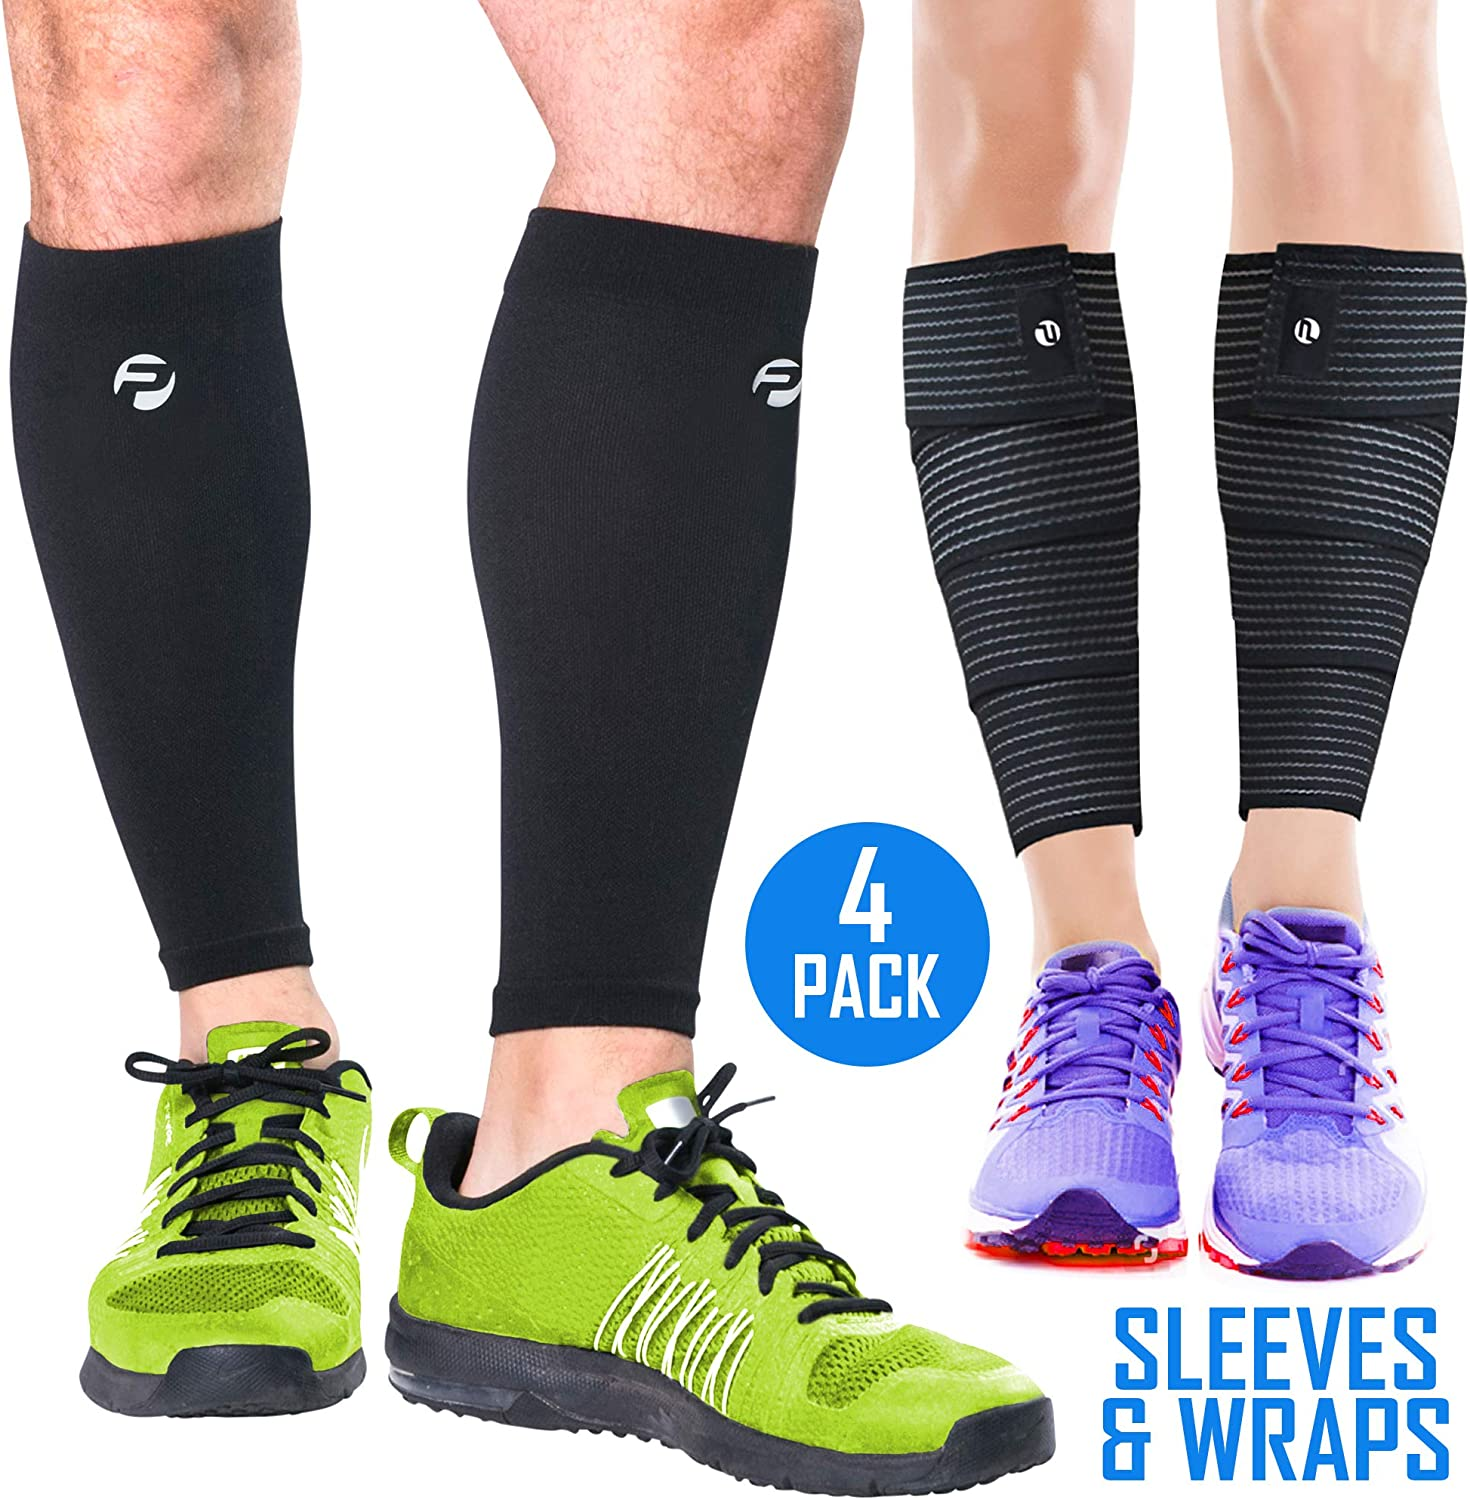 Calf Compression Sleeves and Leg Wraps (4 Piece) Shin Splint Support, Calve Guards for Men and Women - Braces Provide Healthy Circulation Pain Relief for Running, Basketball, Cycling, Maternity: Sports & Outdoors